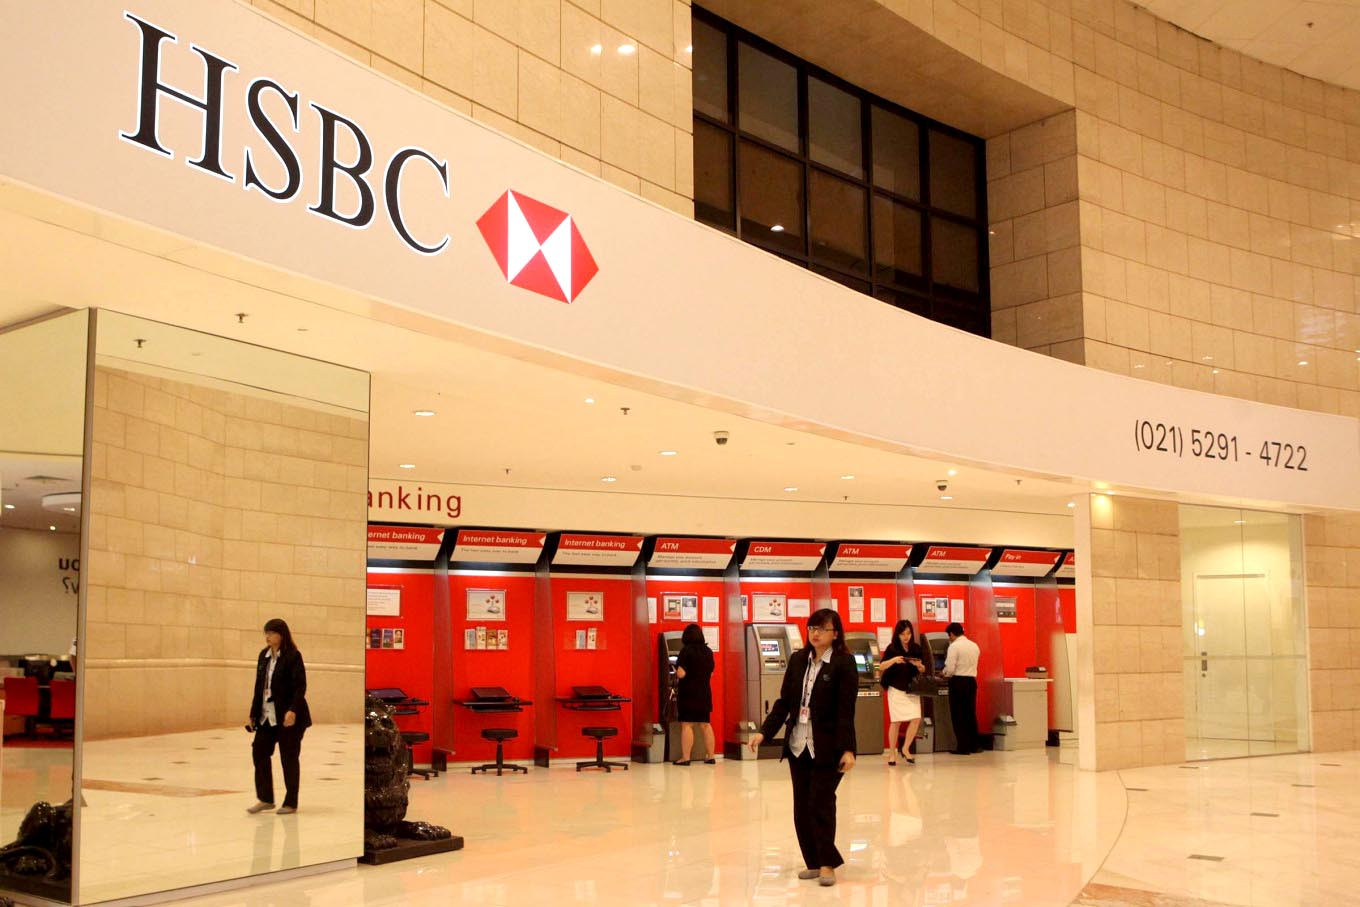 HSBC announces job cuts and radical overhaul as profits slide